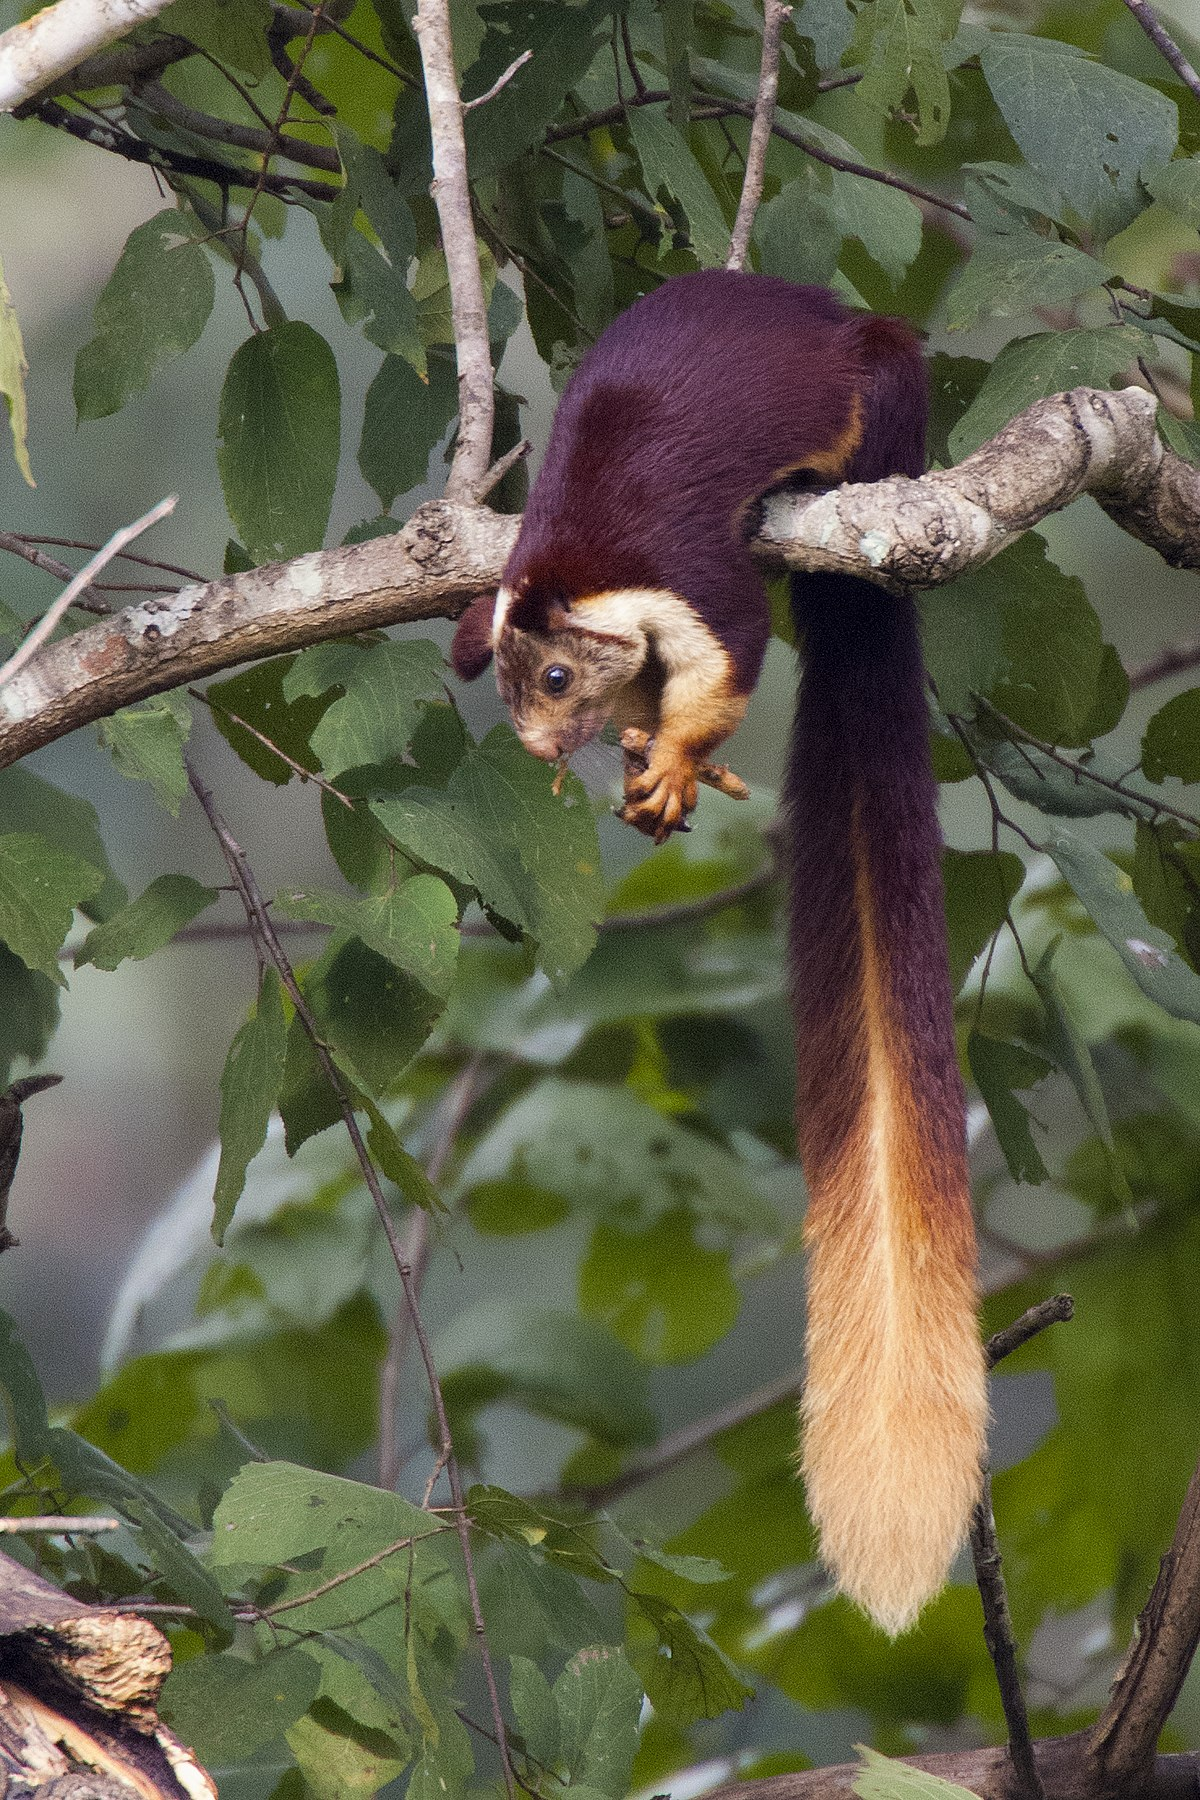 Indian giant squirrel - Wikipedia